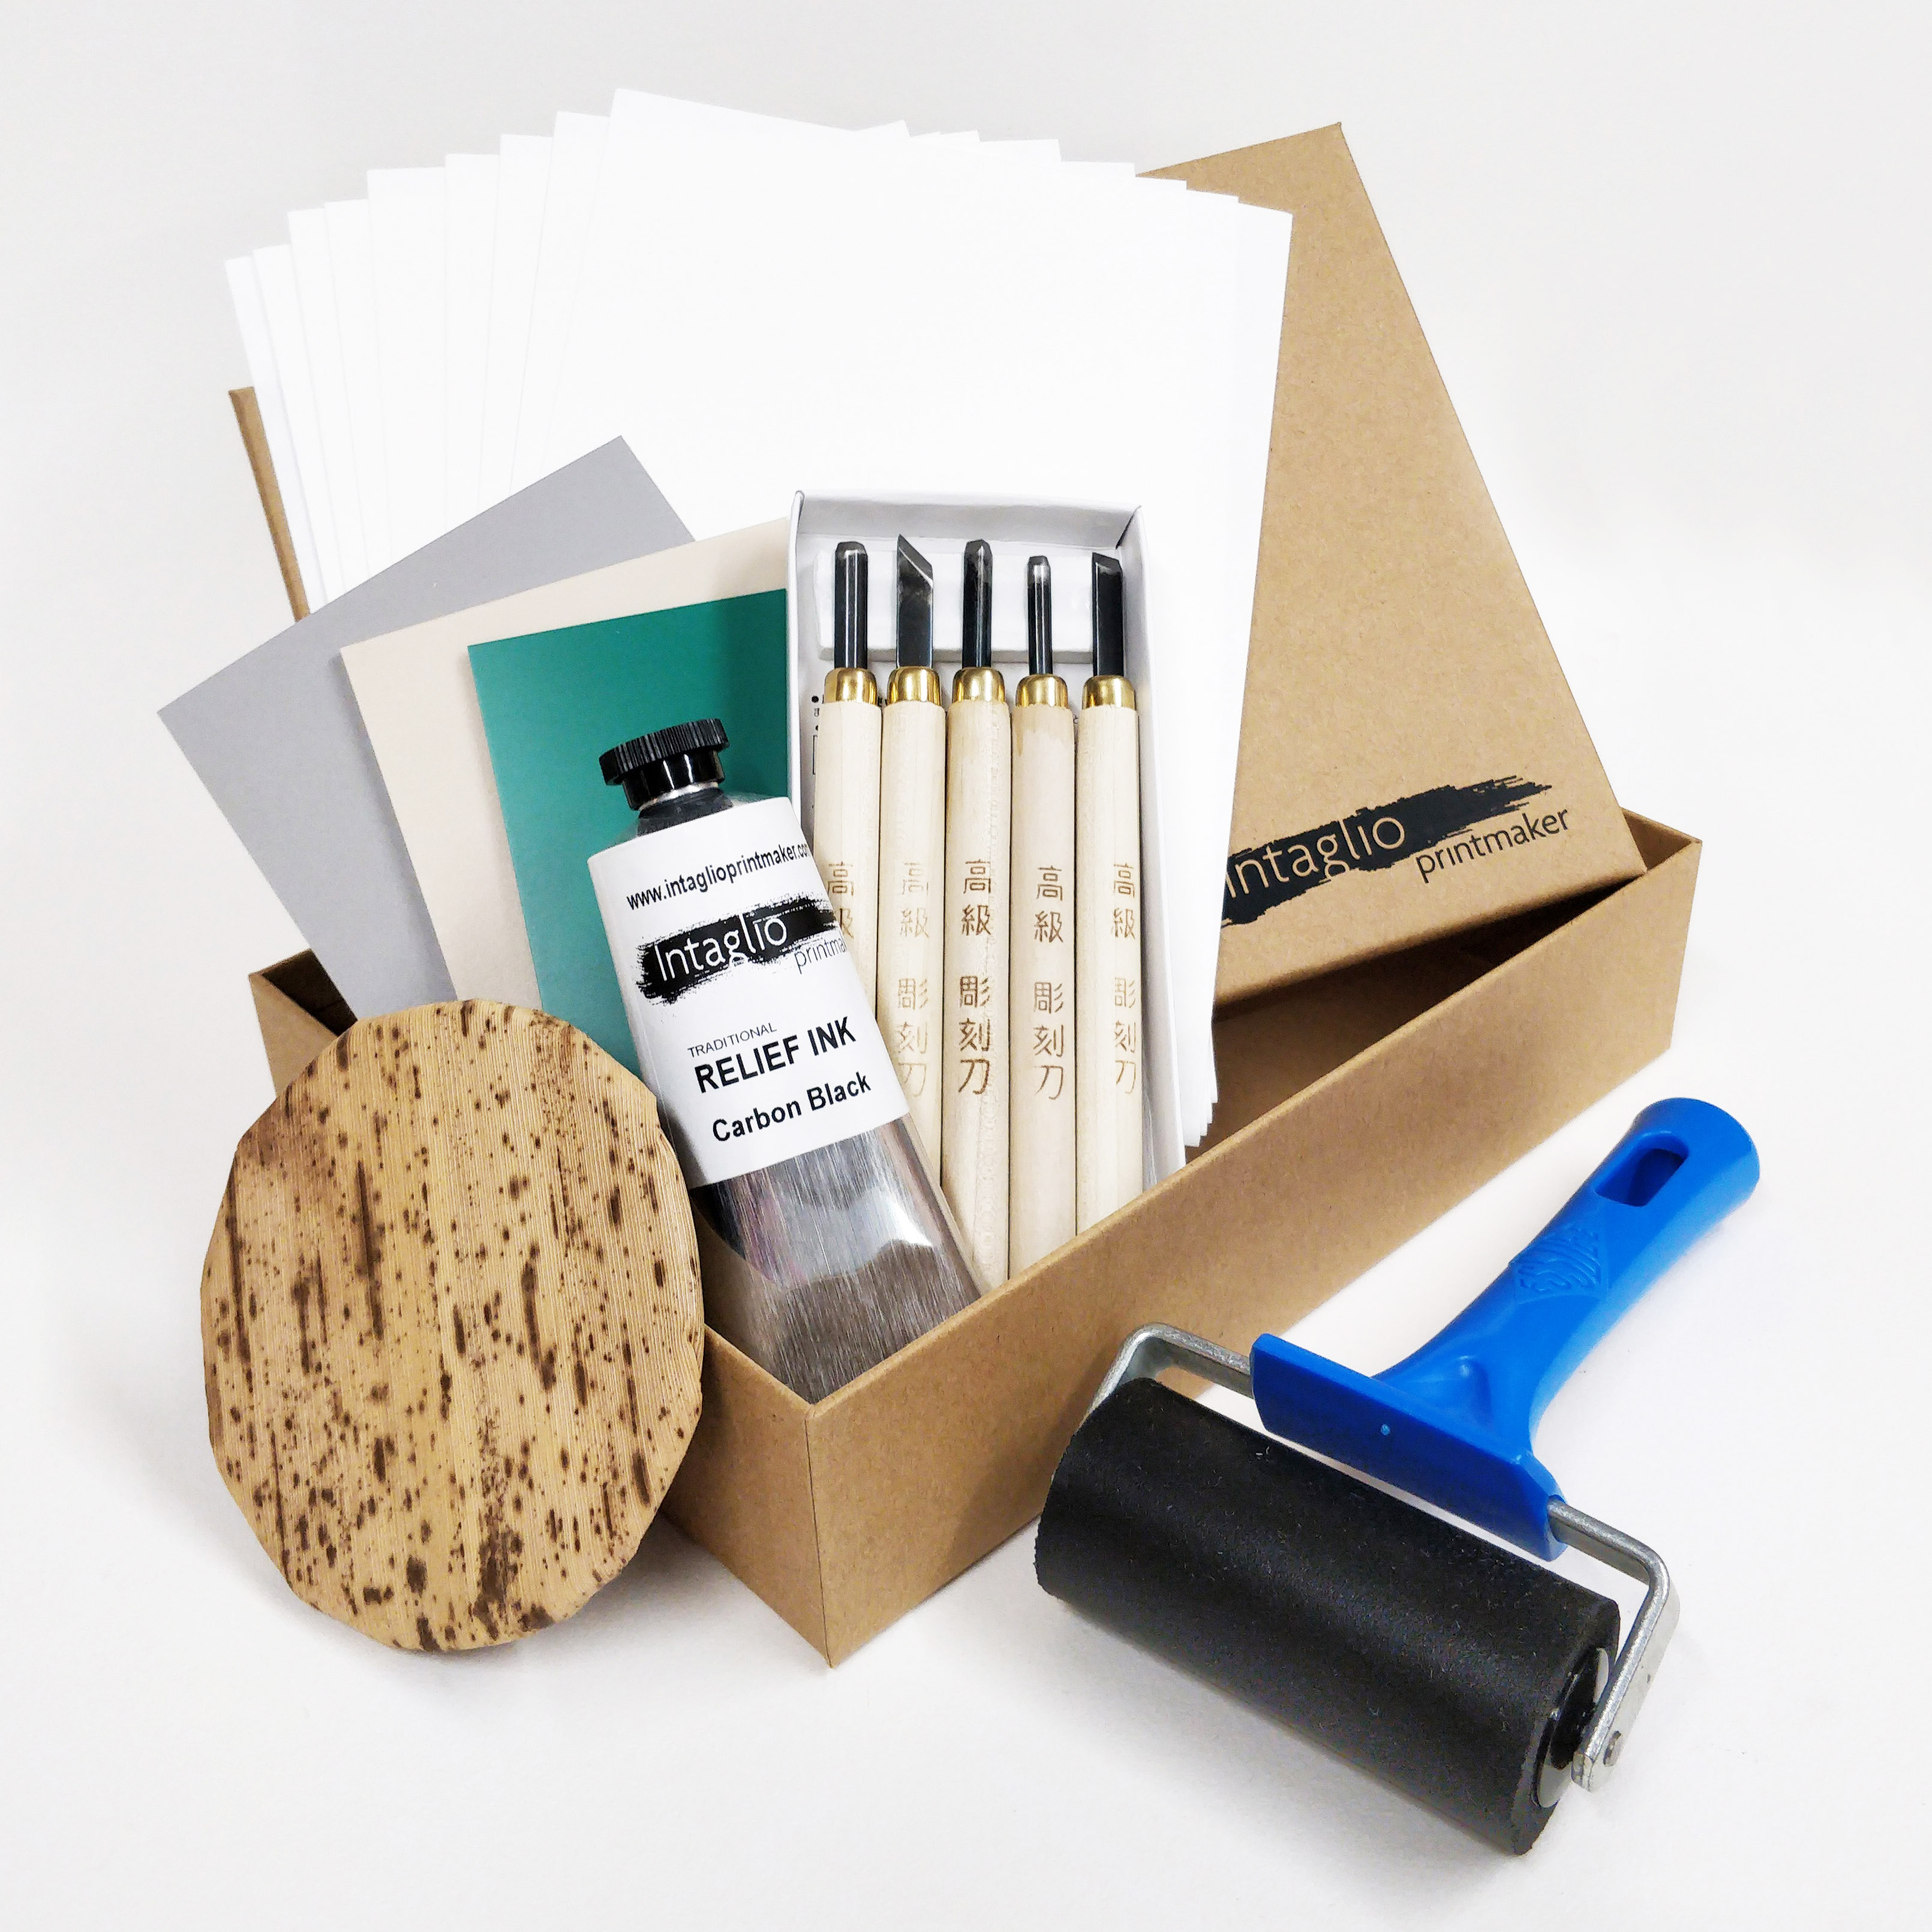 Relief Printing Kits